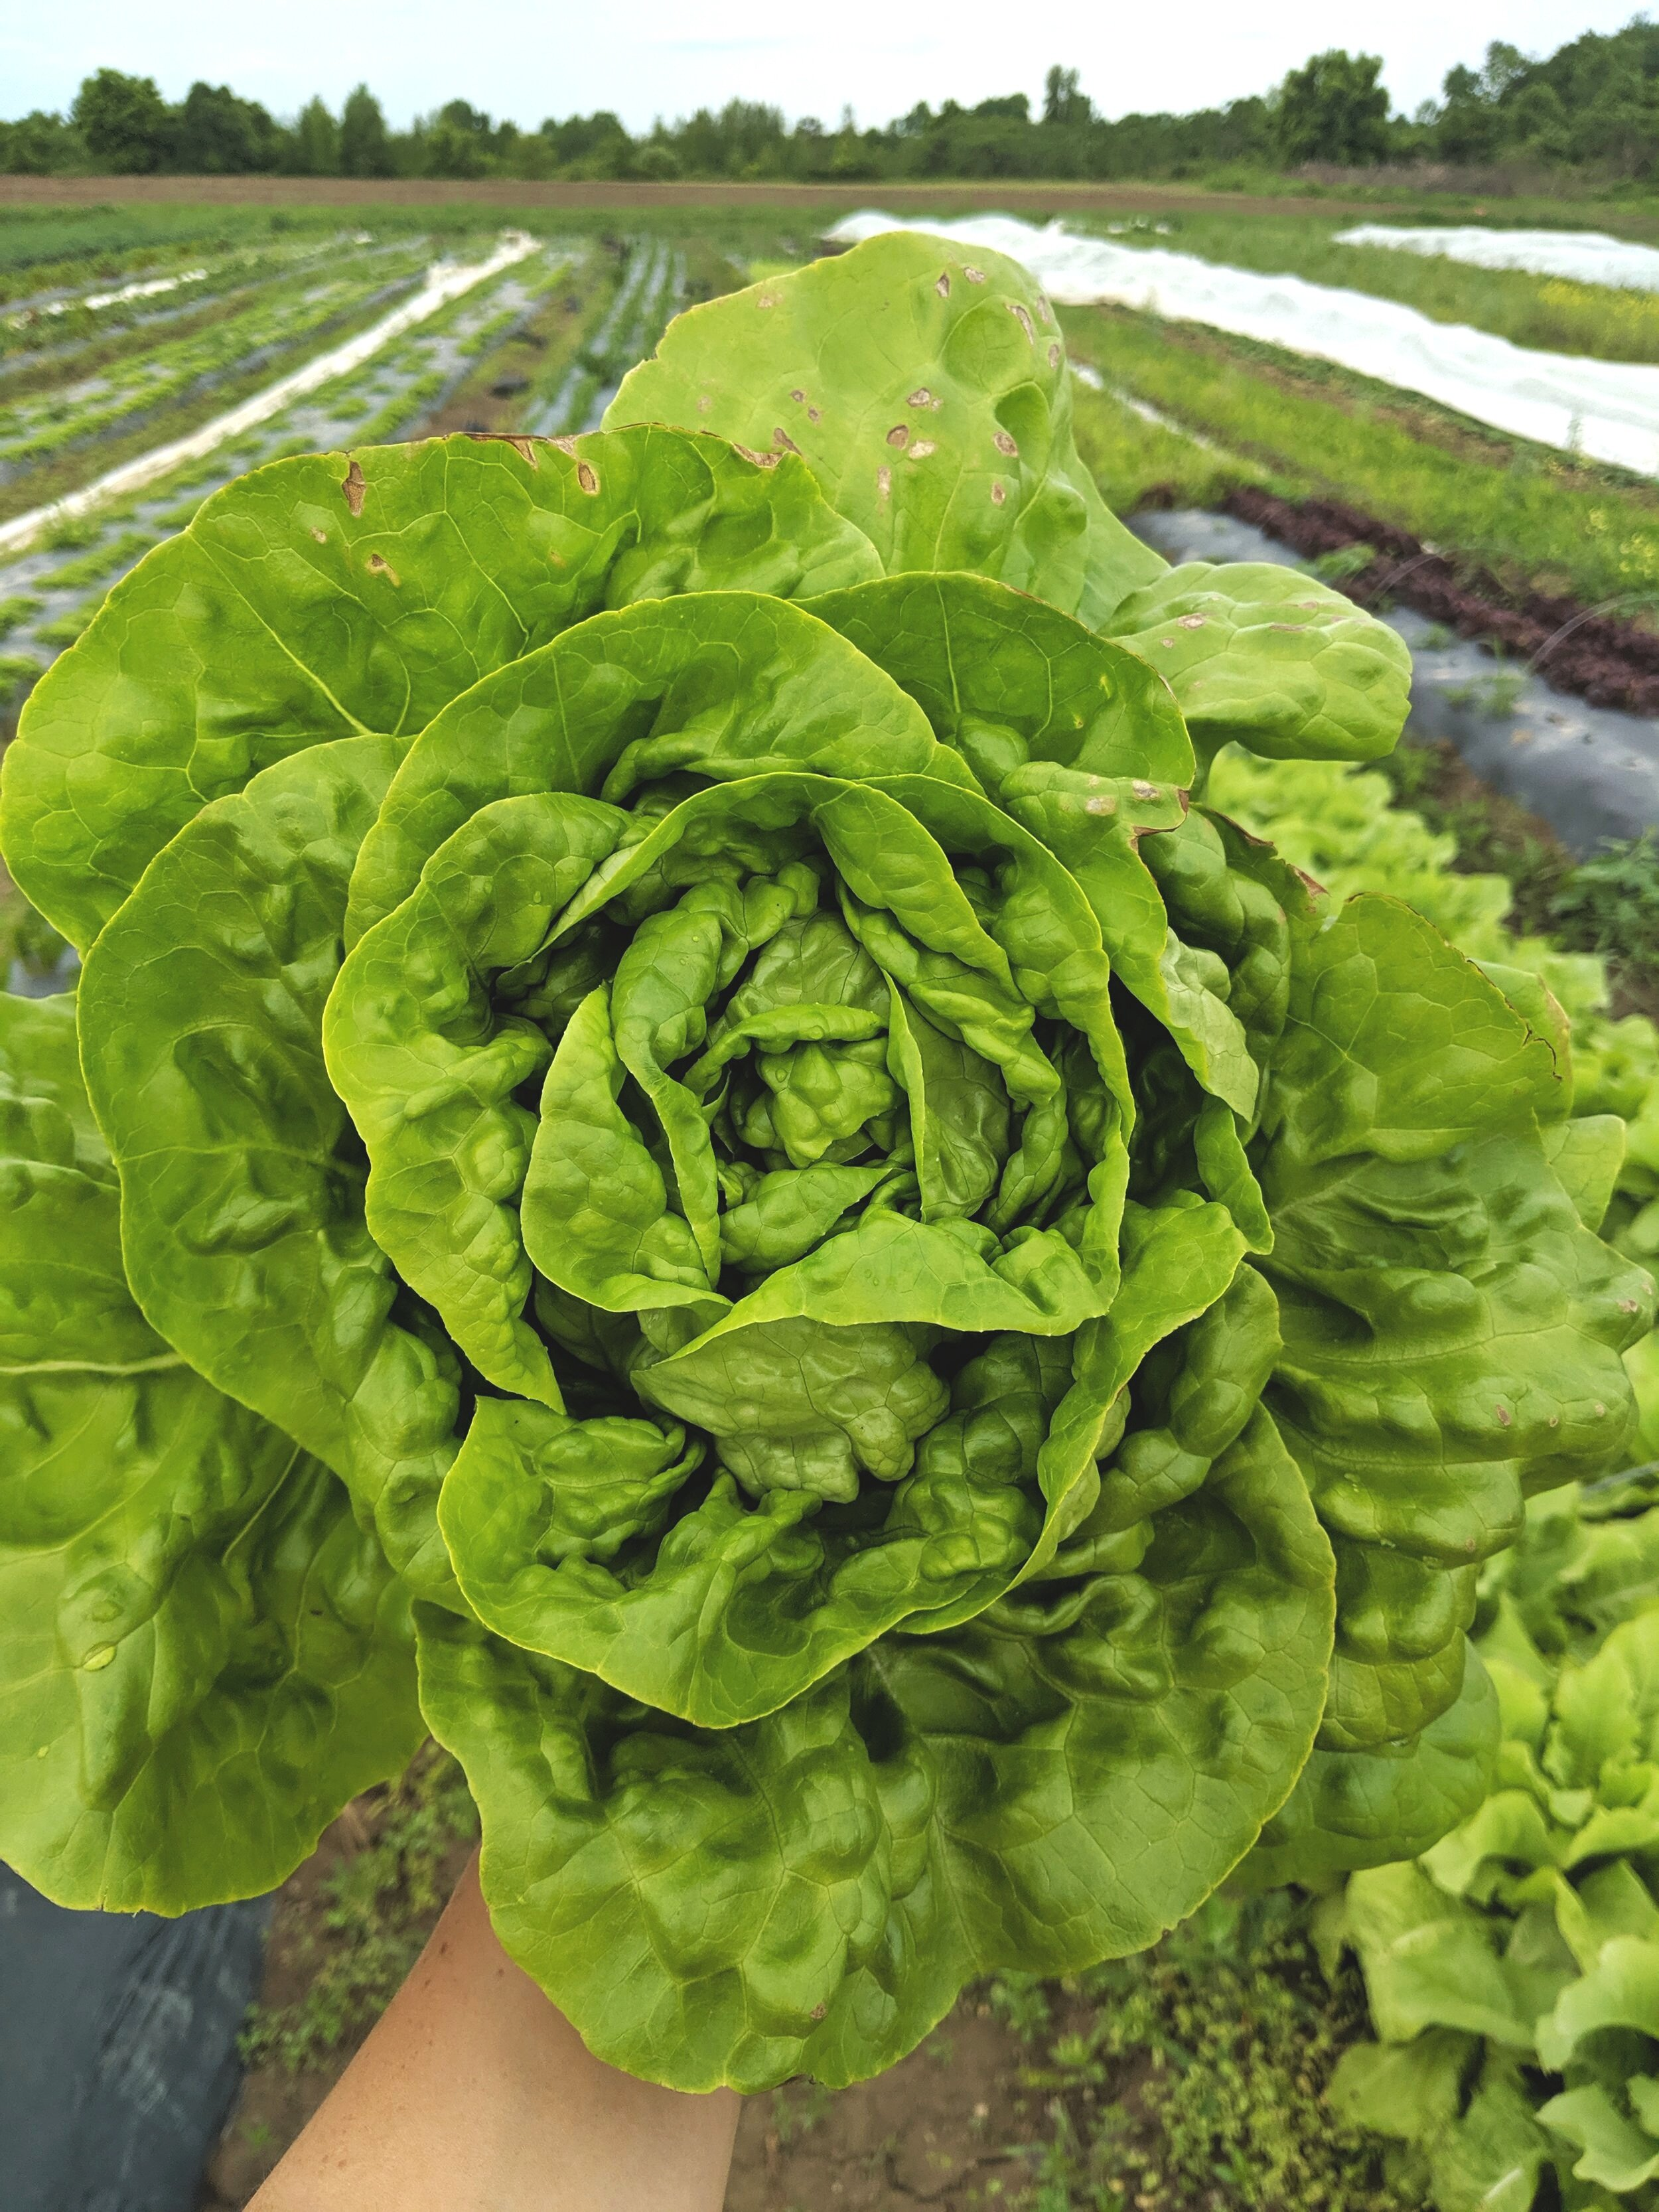 Lettuce:  Salad mix, Red & Green Butterheads, Iceberg, and Romaine.